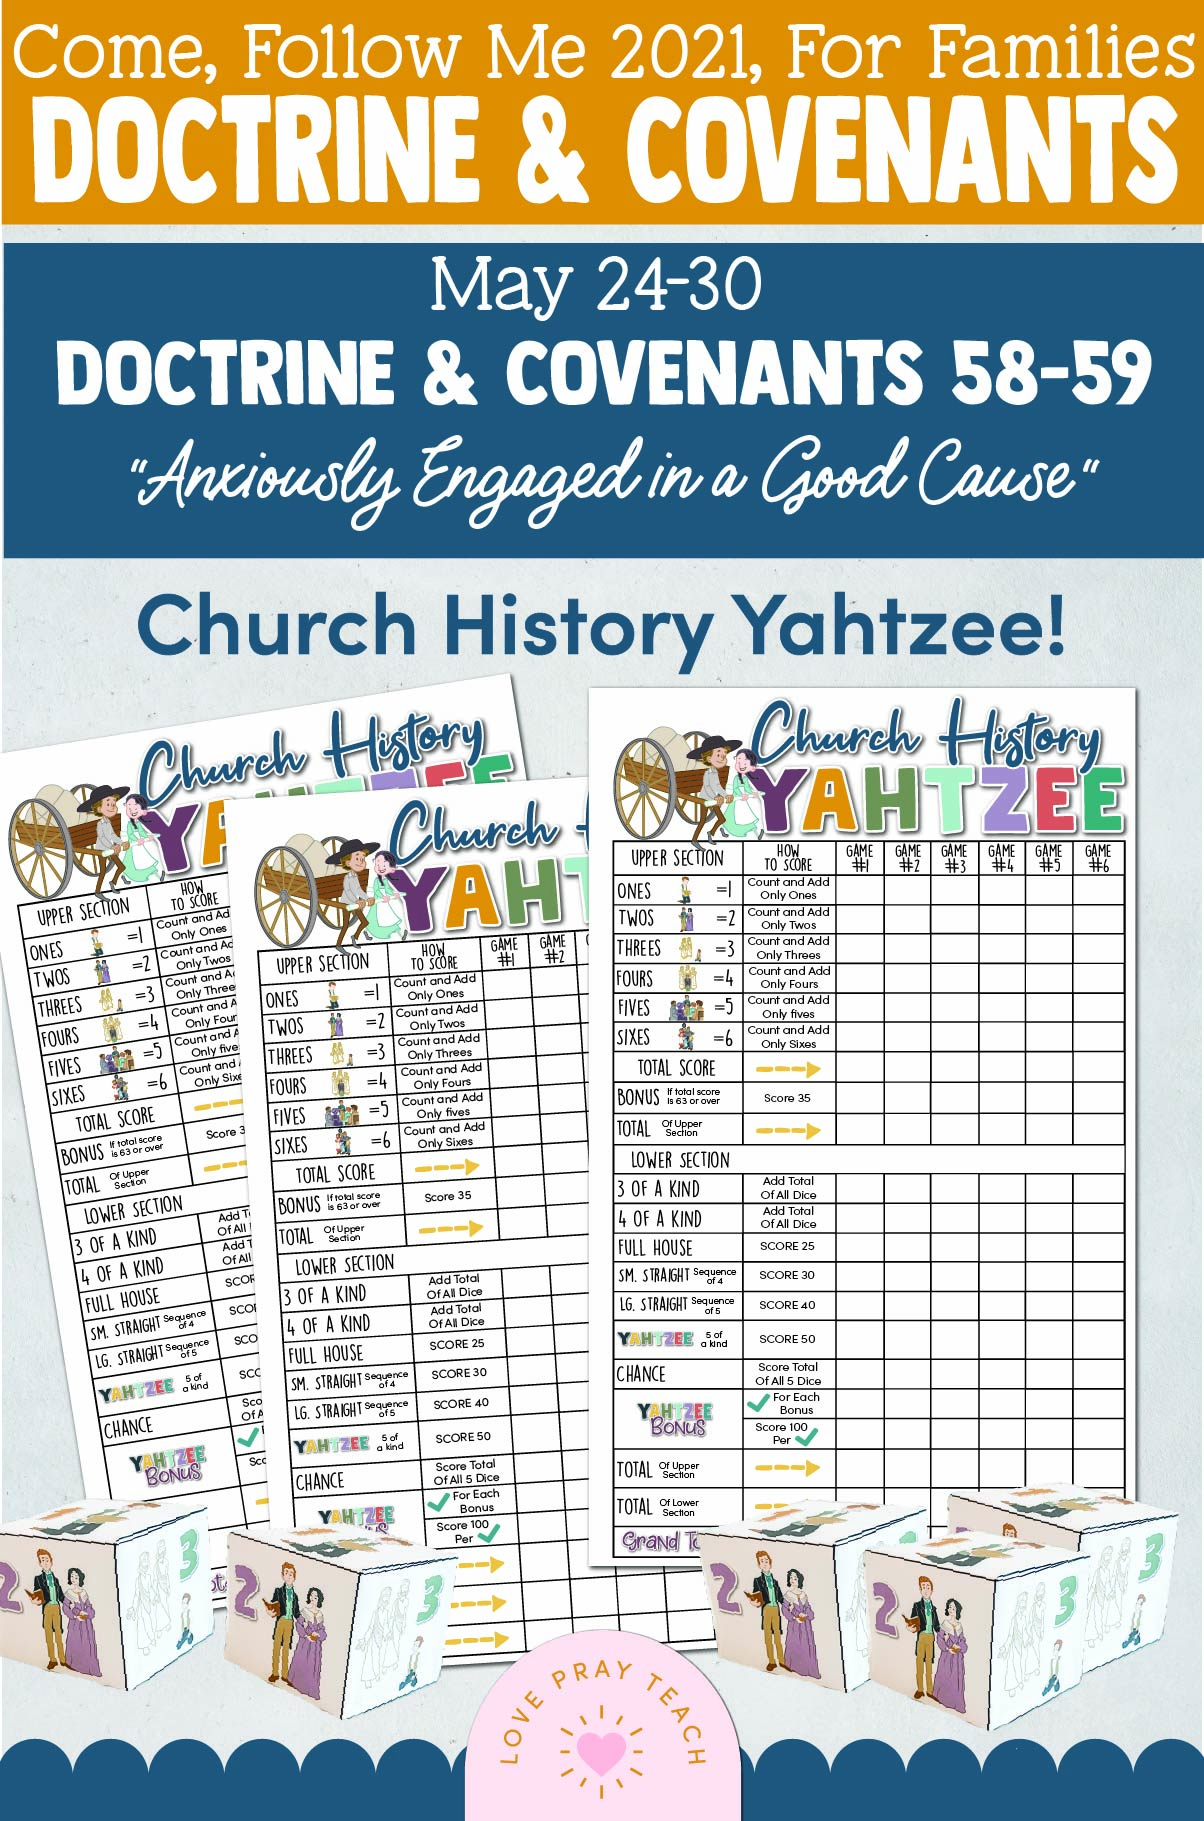 """Come, Follow Me—For Individuals and Families: Doctrine And Covenants 2021, May Week 5 Doctrine and Covenants 58-59: May 24-30, """"Anxiously Engaged in a Good Cause"""""""